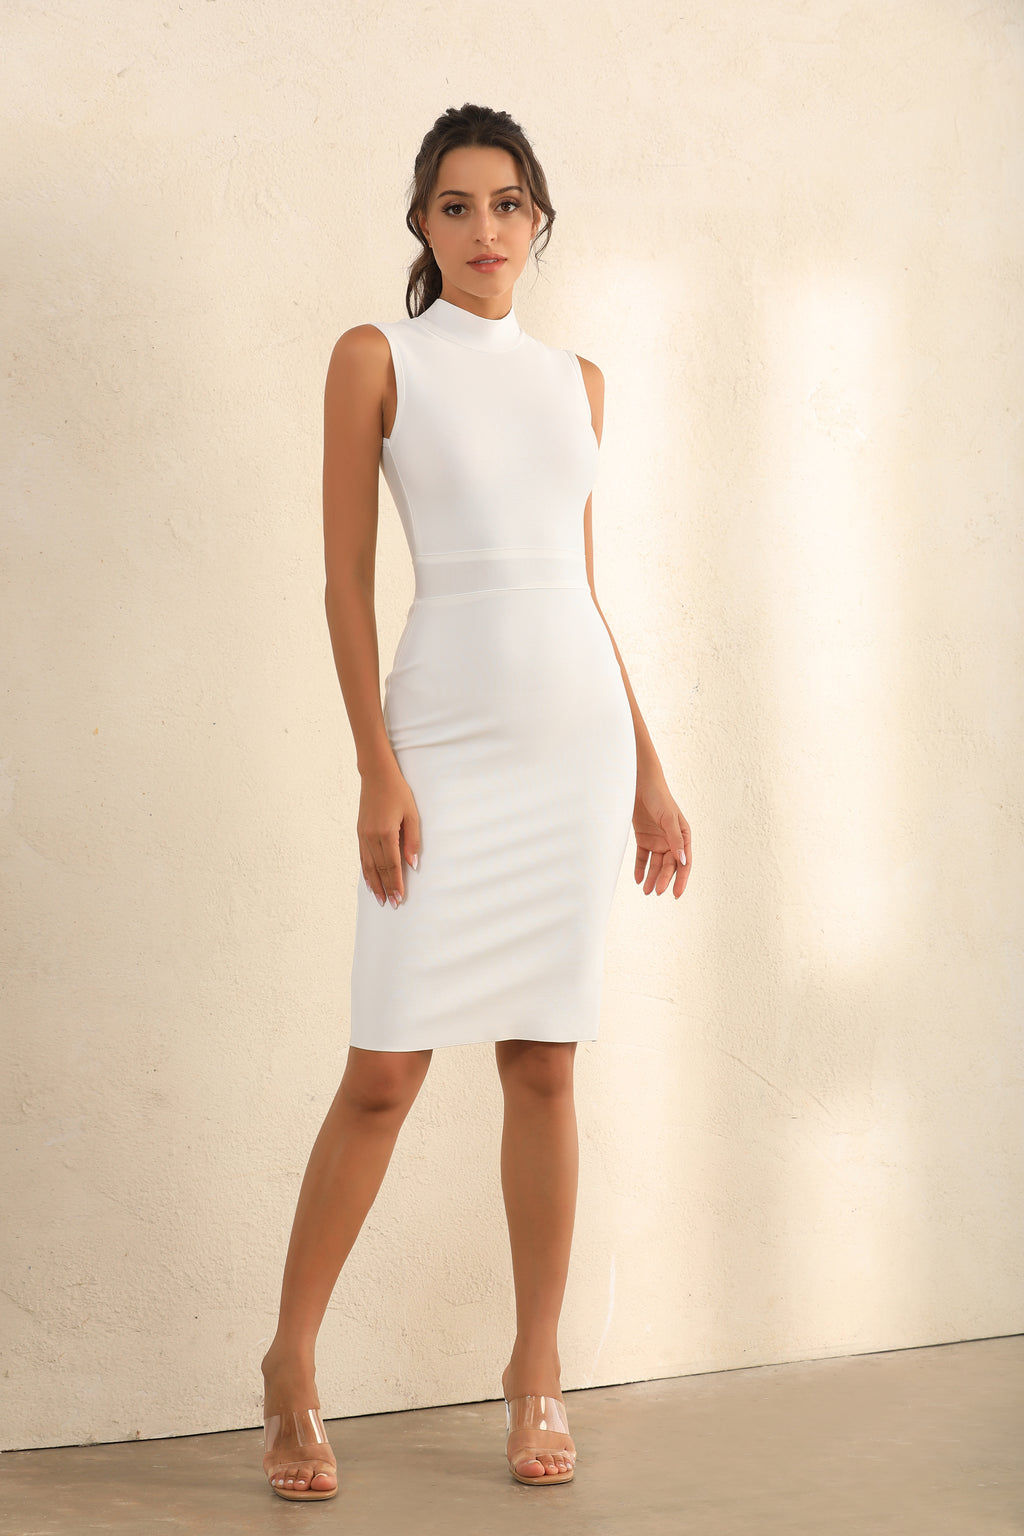 Turtle Neck Bodycon Bandage Midi Dress In White - Miss Floral